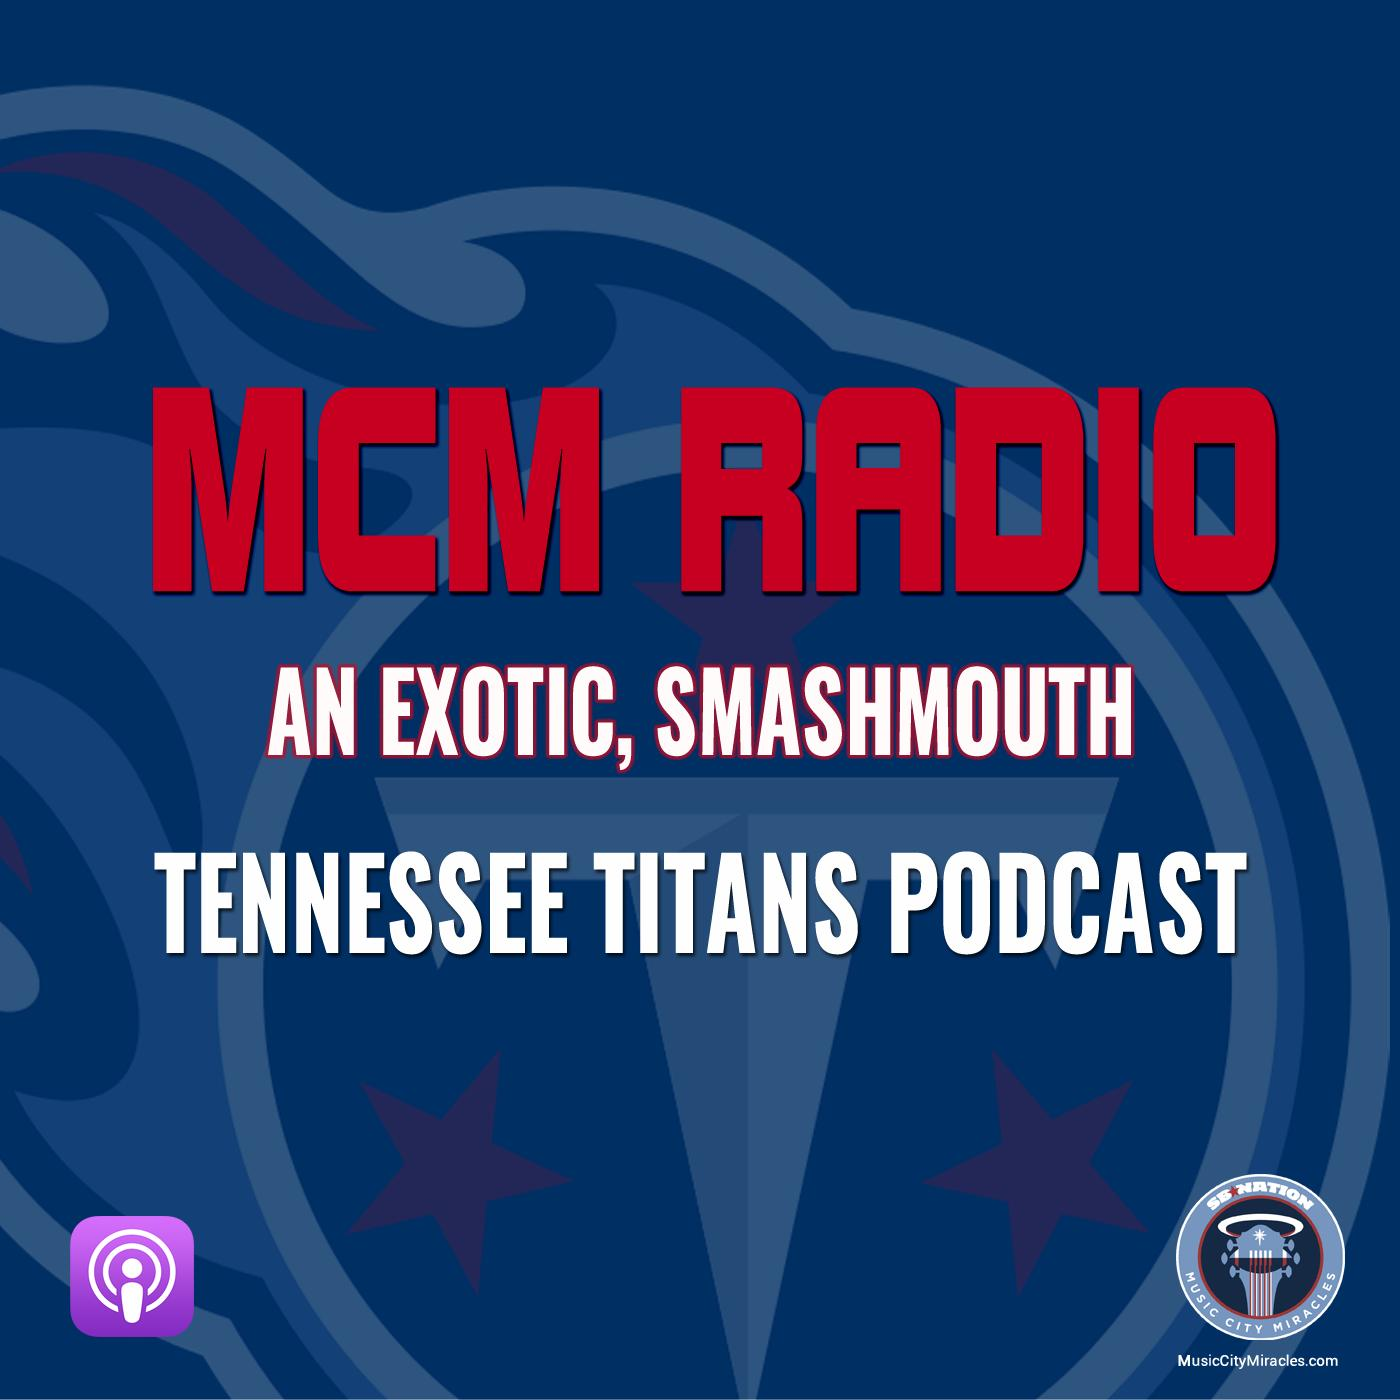 MCM RADIO: The Tennessee Titans Podcast